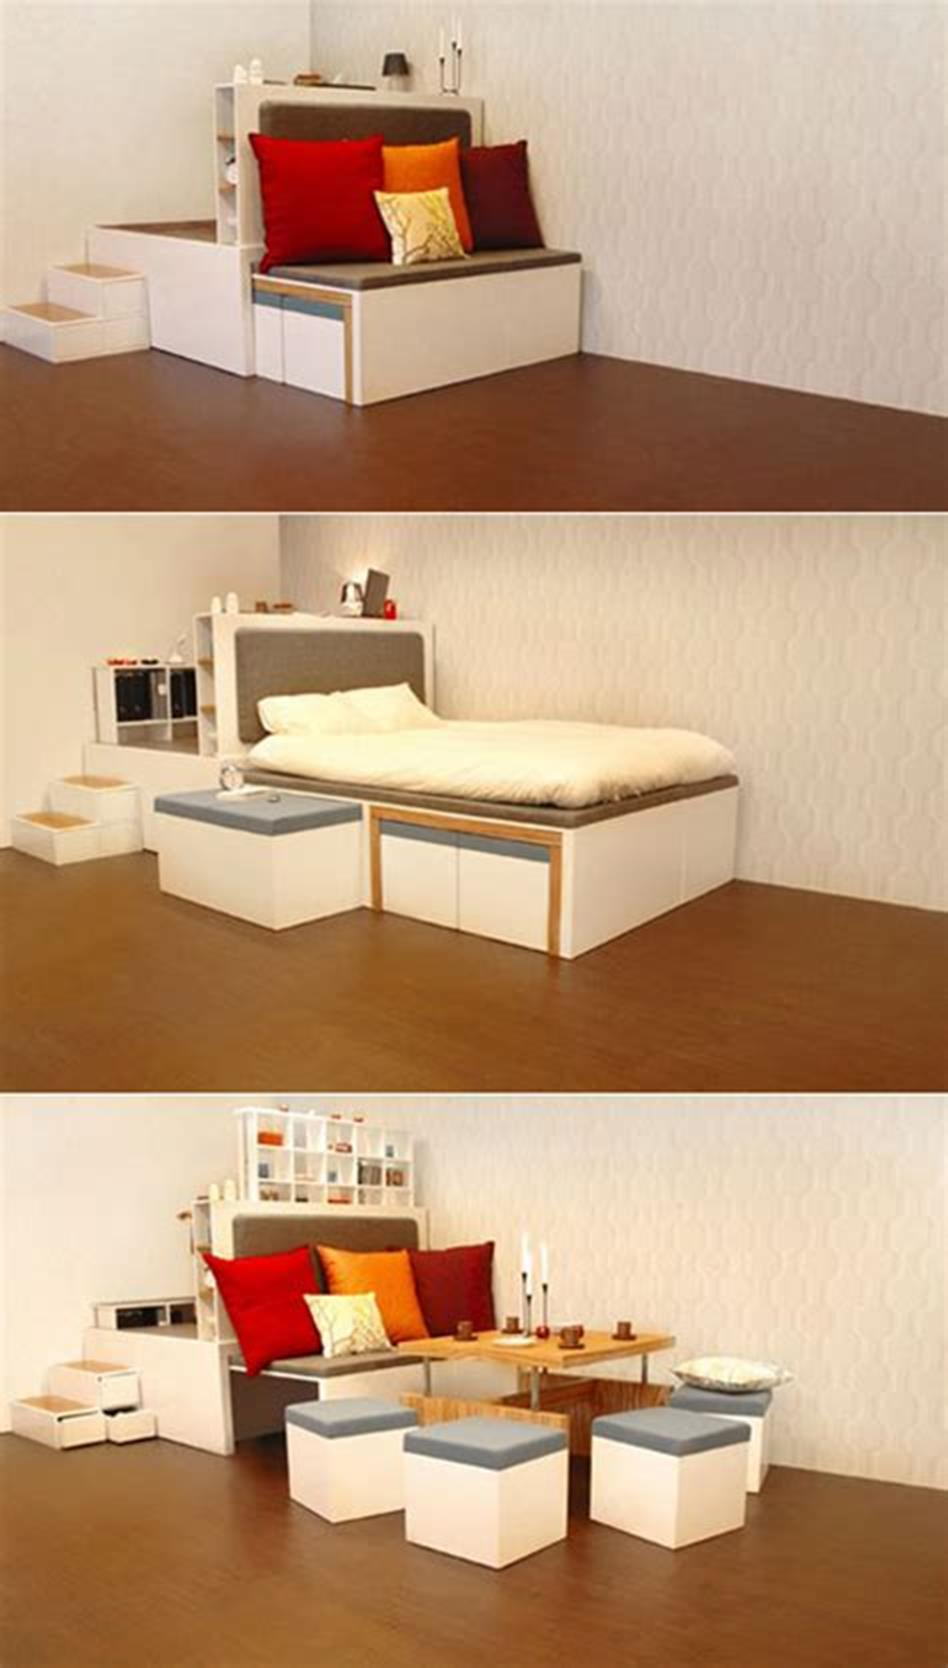 50 Amazing Ideas Furniture for Small Spaces Youll Love 2